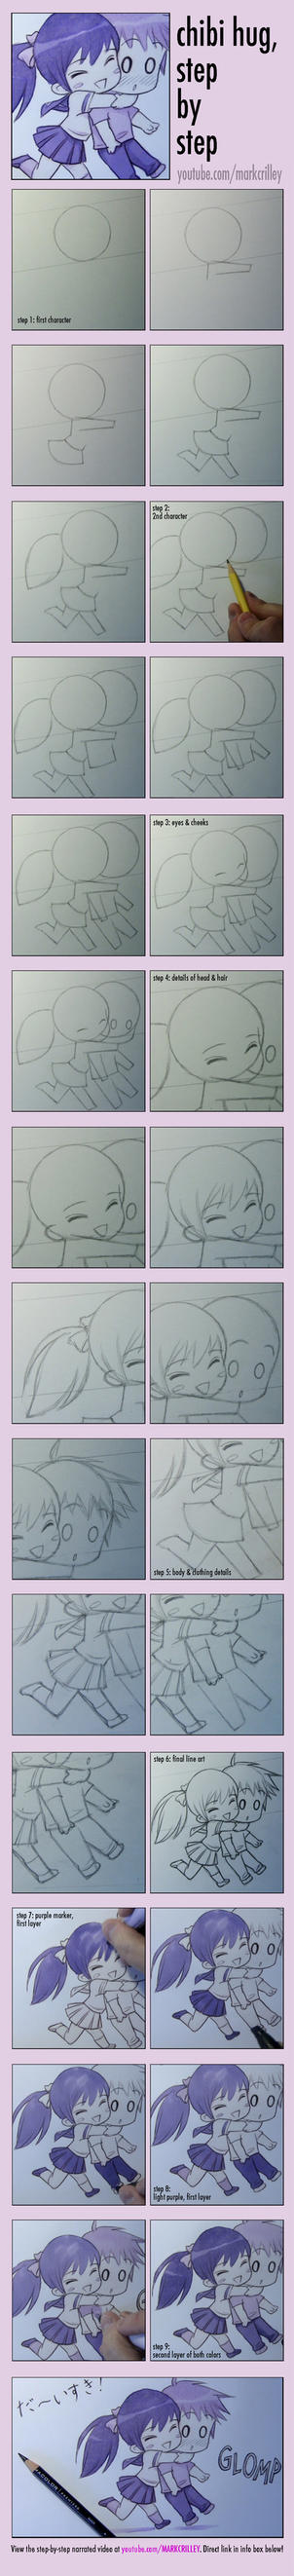 Chibi Hug, Step by Step by markcrilley